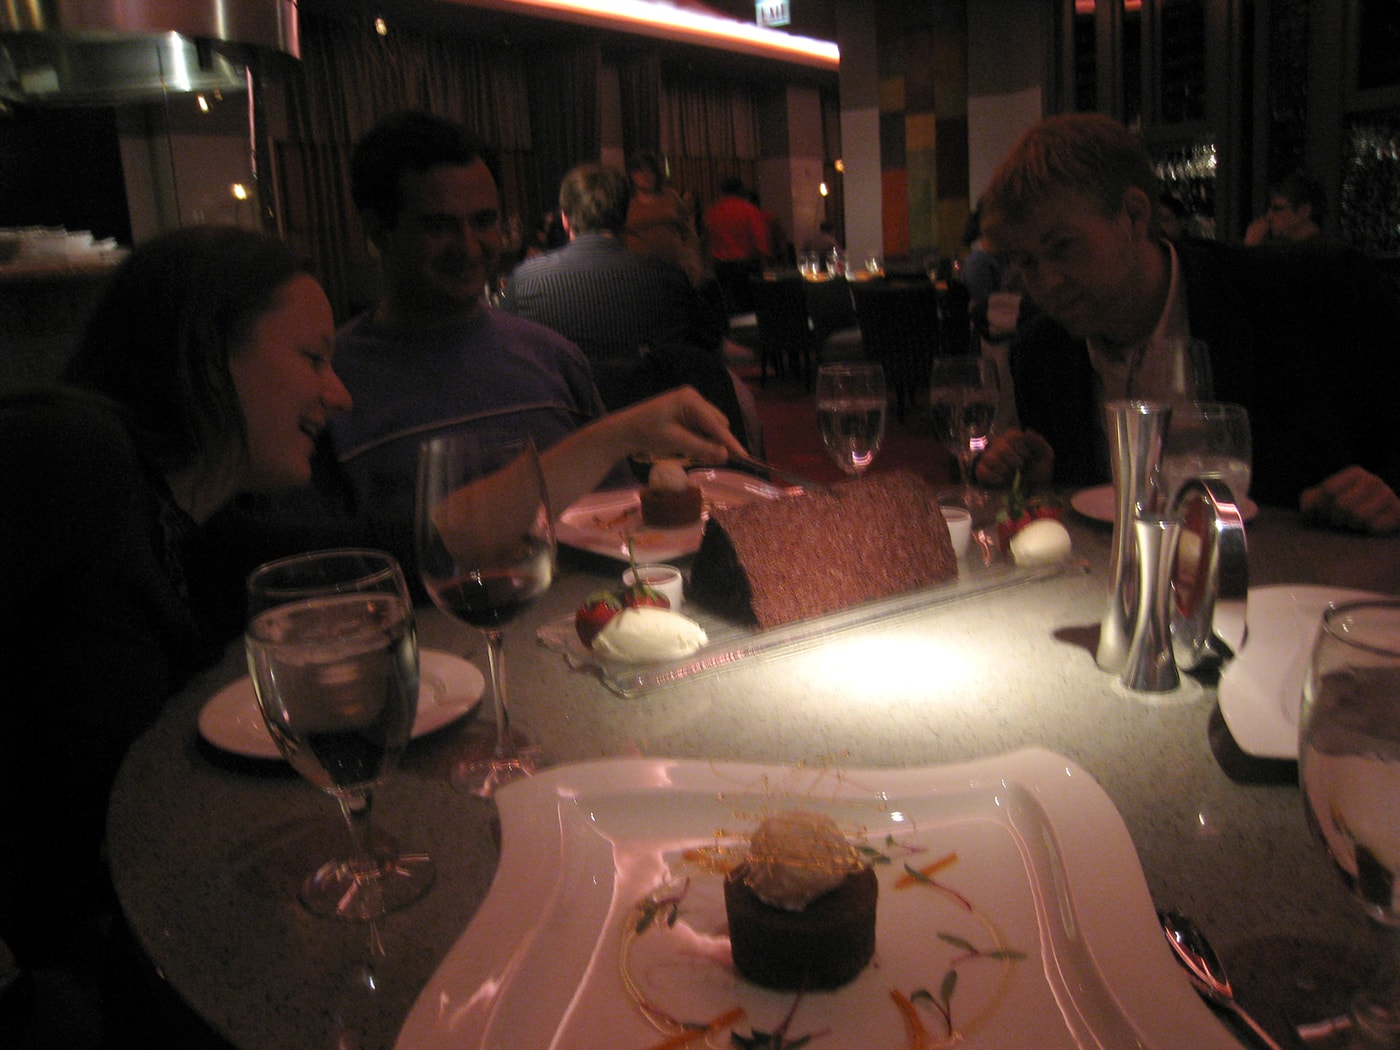 Chicago restaurant week. The best chocolate cake in Chicago at Aria.